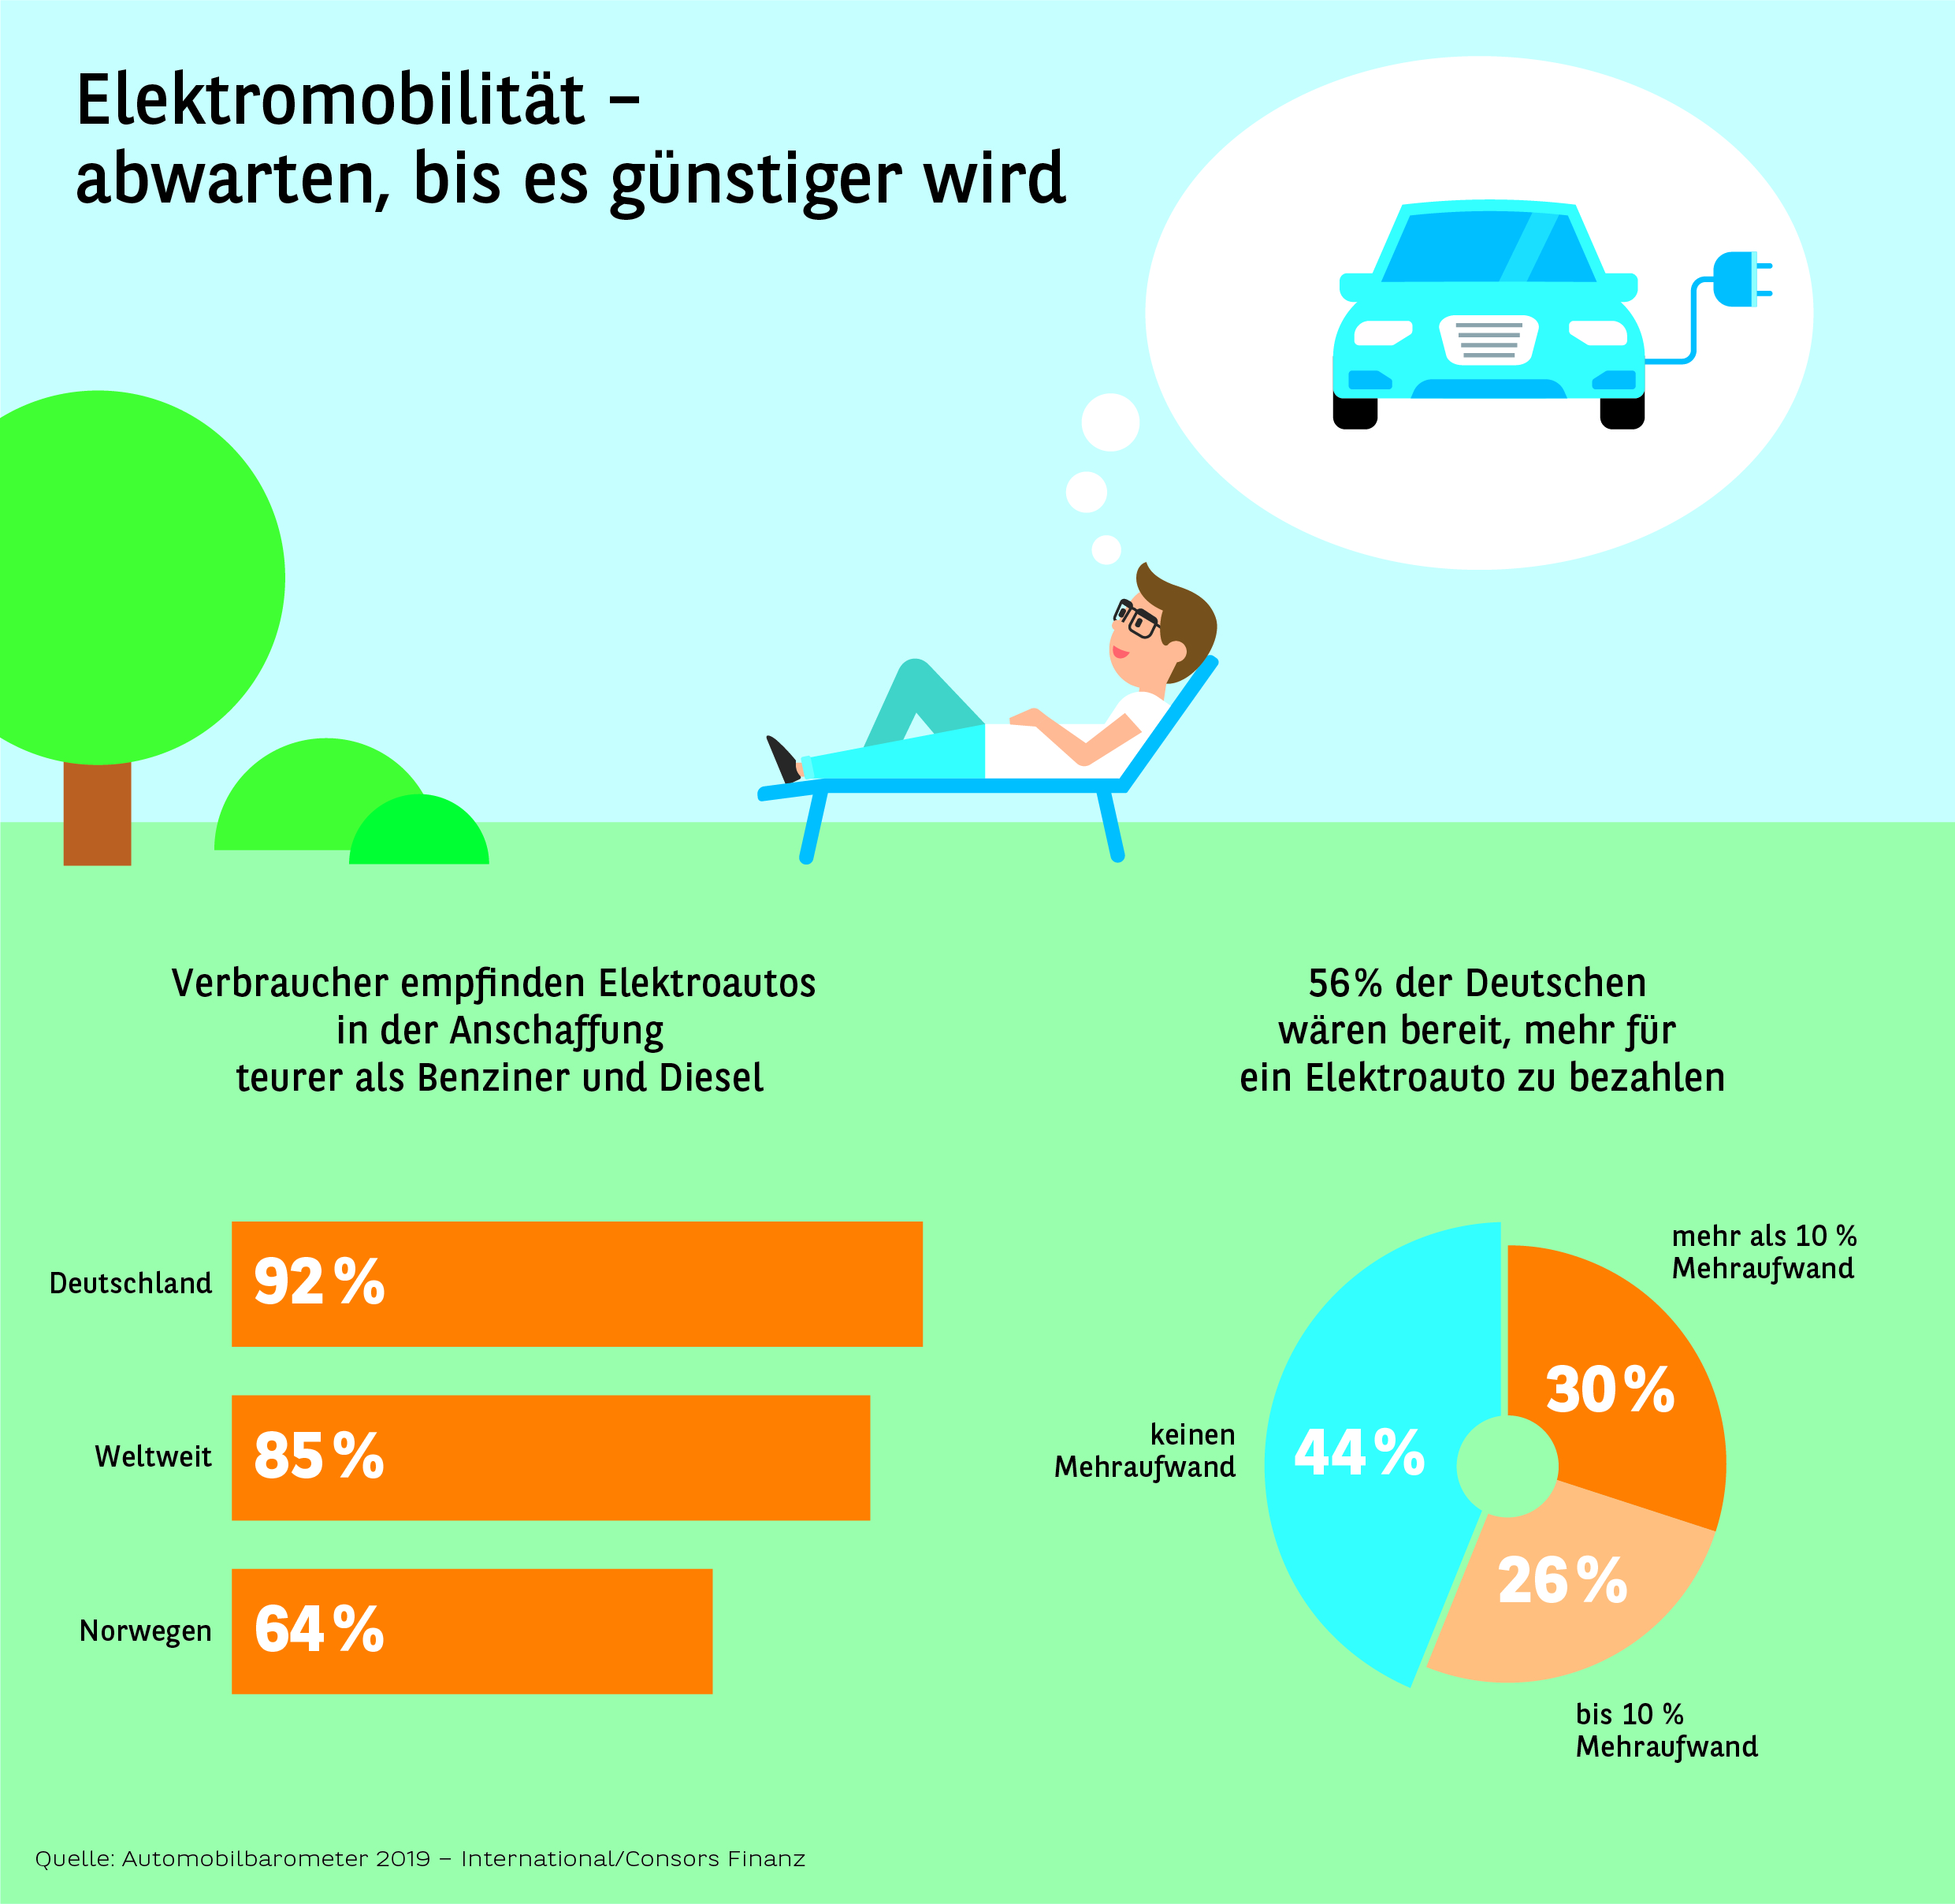 Automobilbarometer 2019 – International